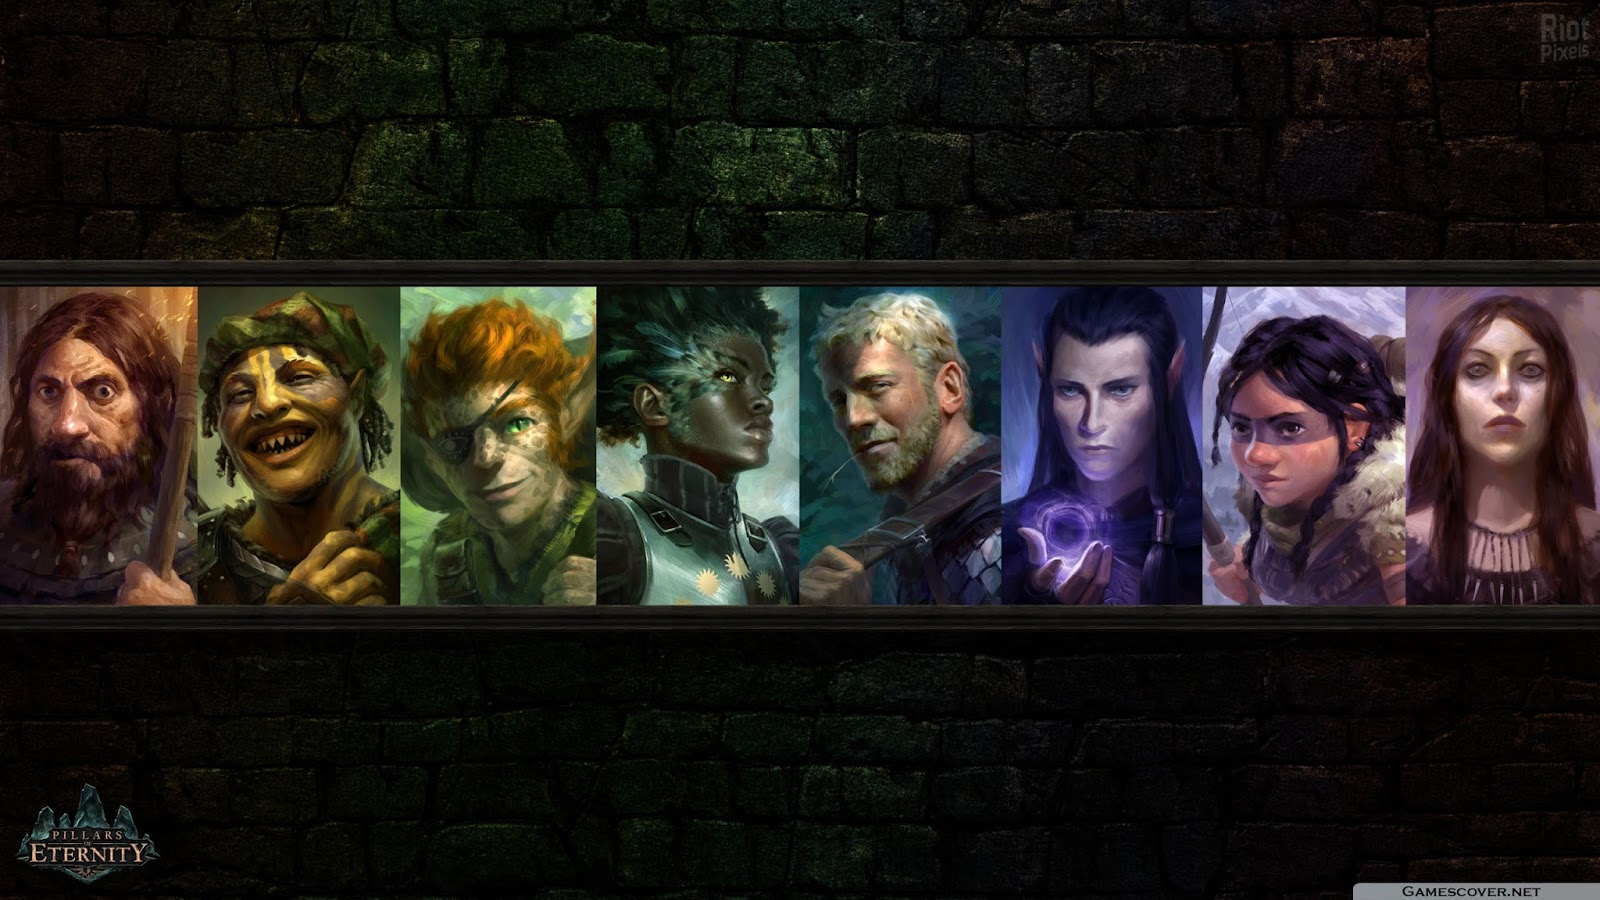 Pillars Of Eternity Wallpaper: Pillars Of Eternity Wallpapers